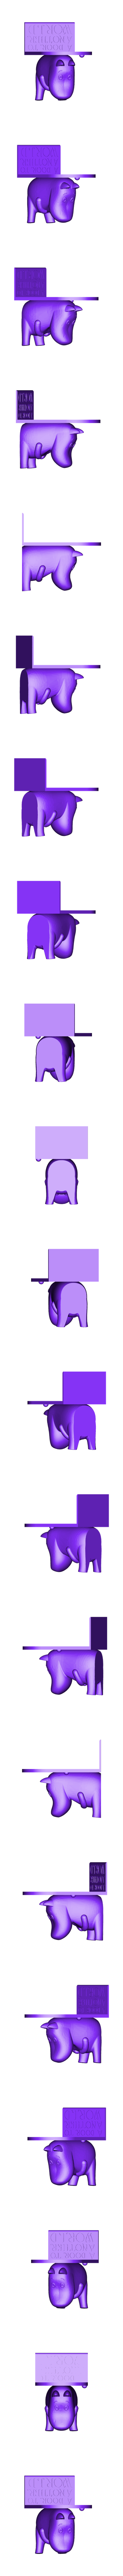 Moomin_Bookend_V2-TEXT.stl Download free STL file Moomin bookend • 3D printable template, FrankLumien